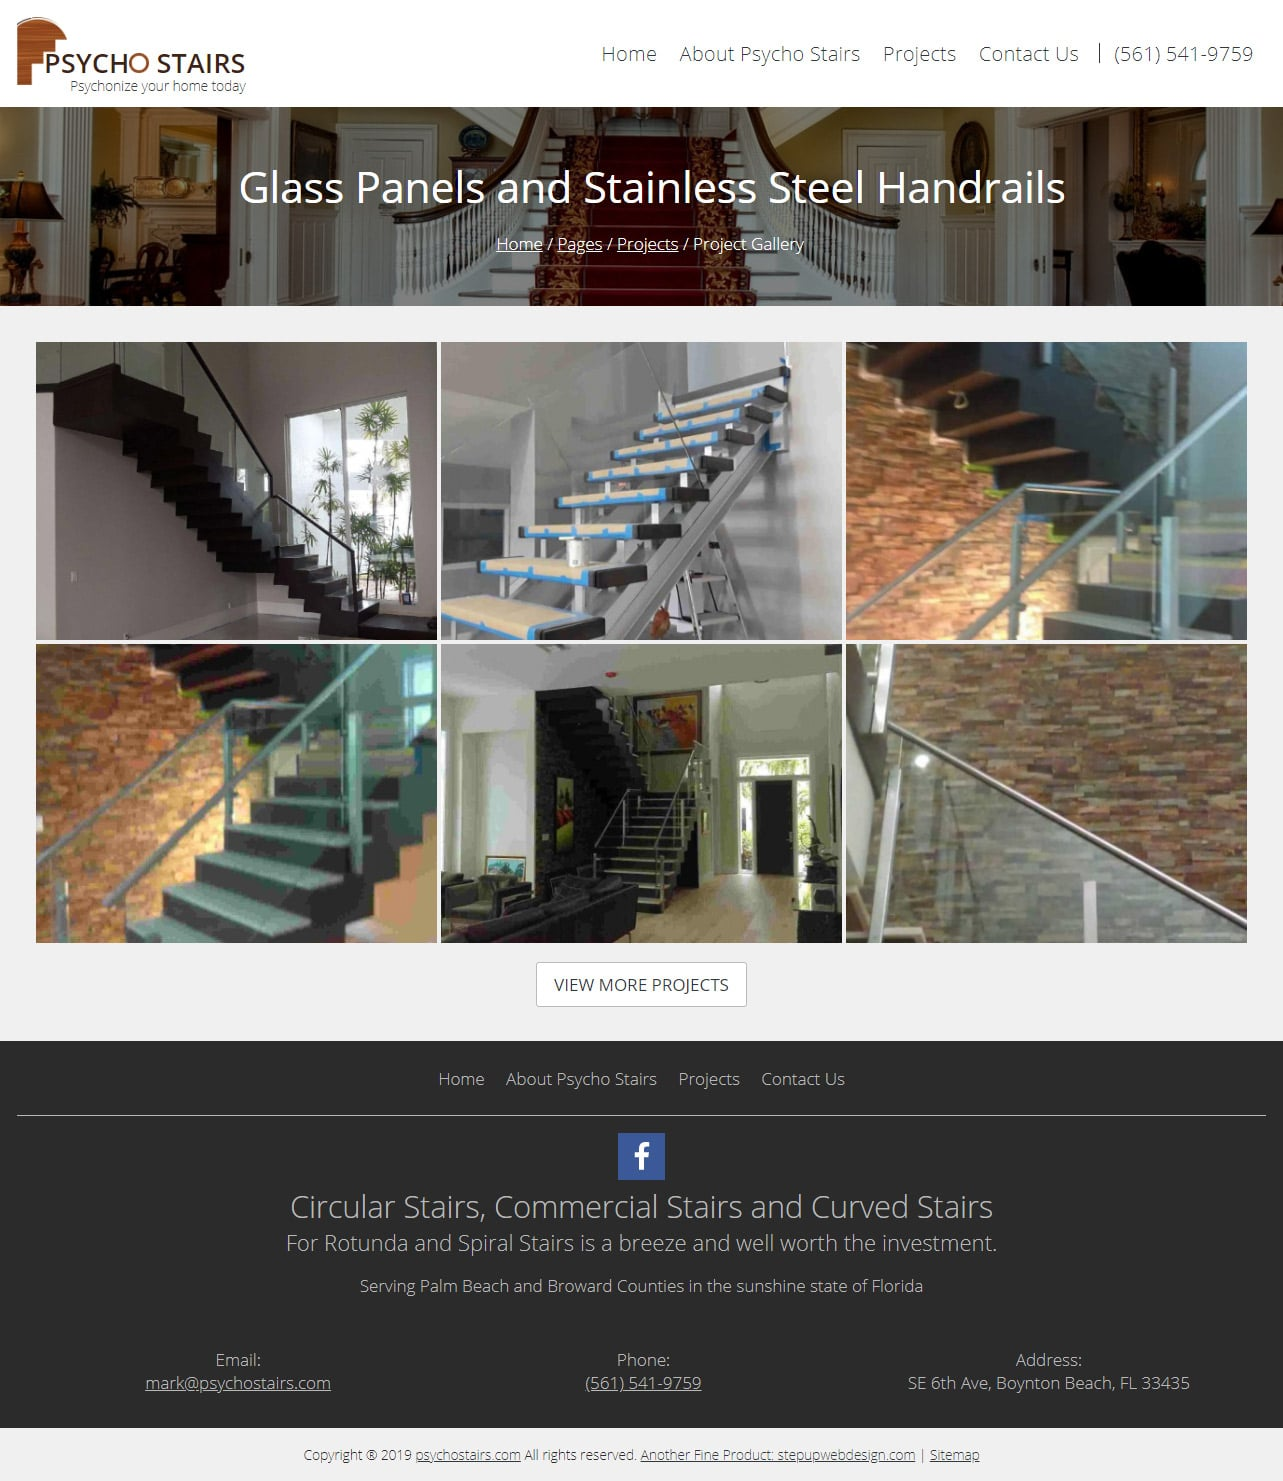 Psycho Stairs Website Projects Page Design